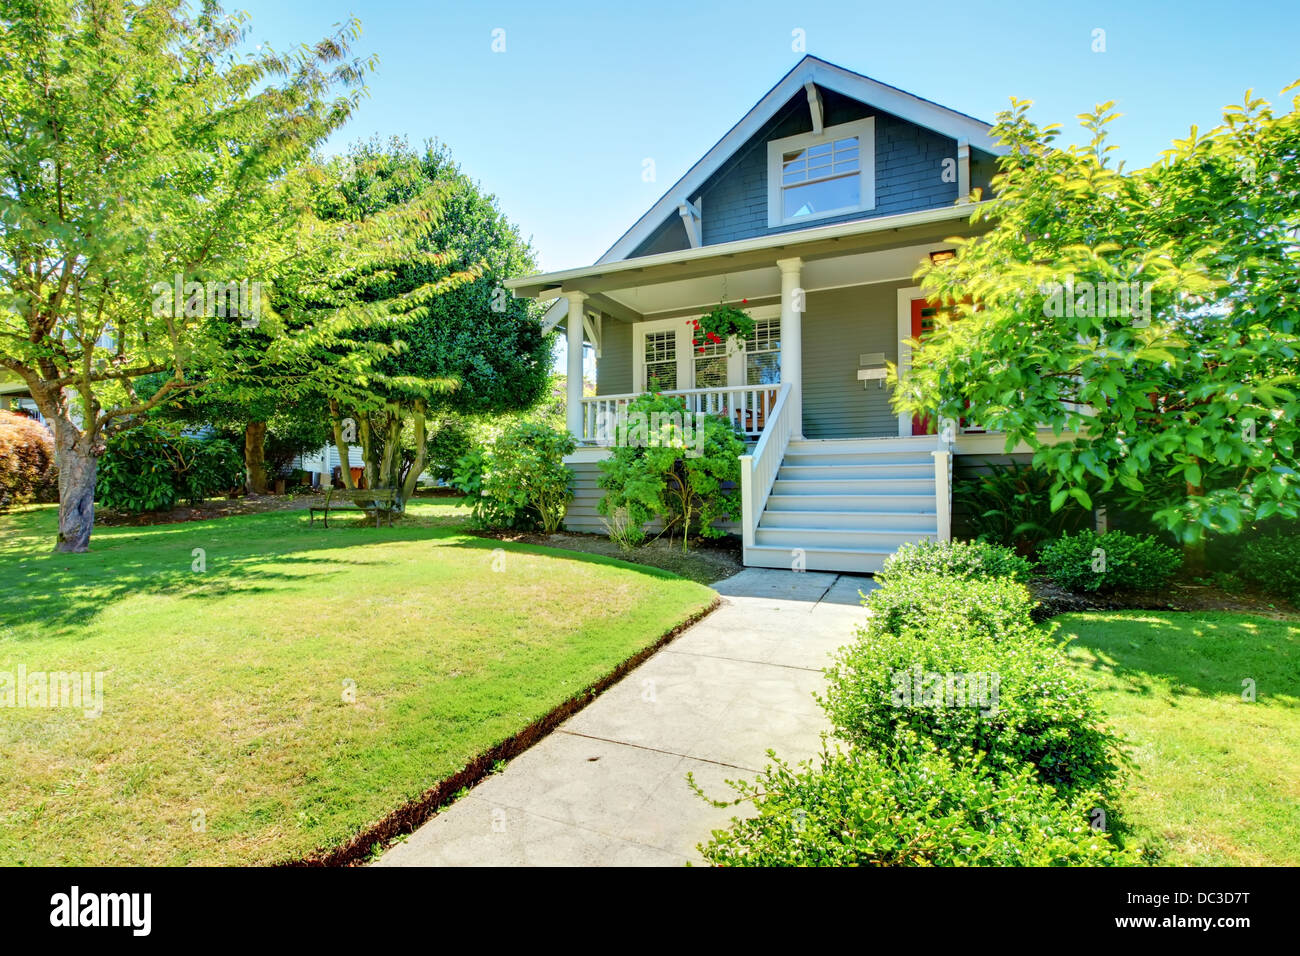 Grey Small Old American House Front Exterior With White Staircase Stock Photo Alamy